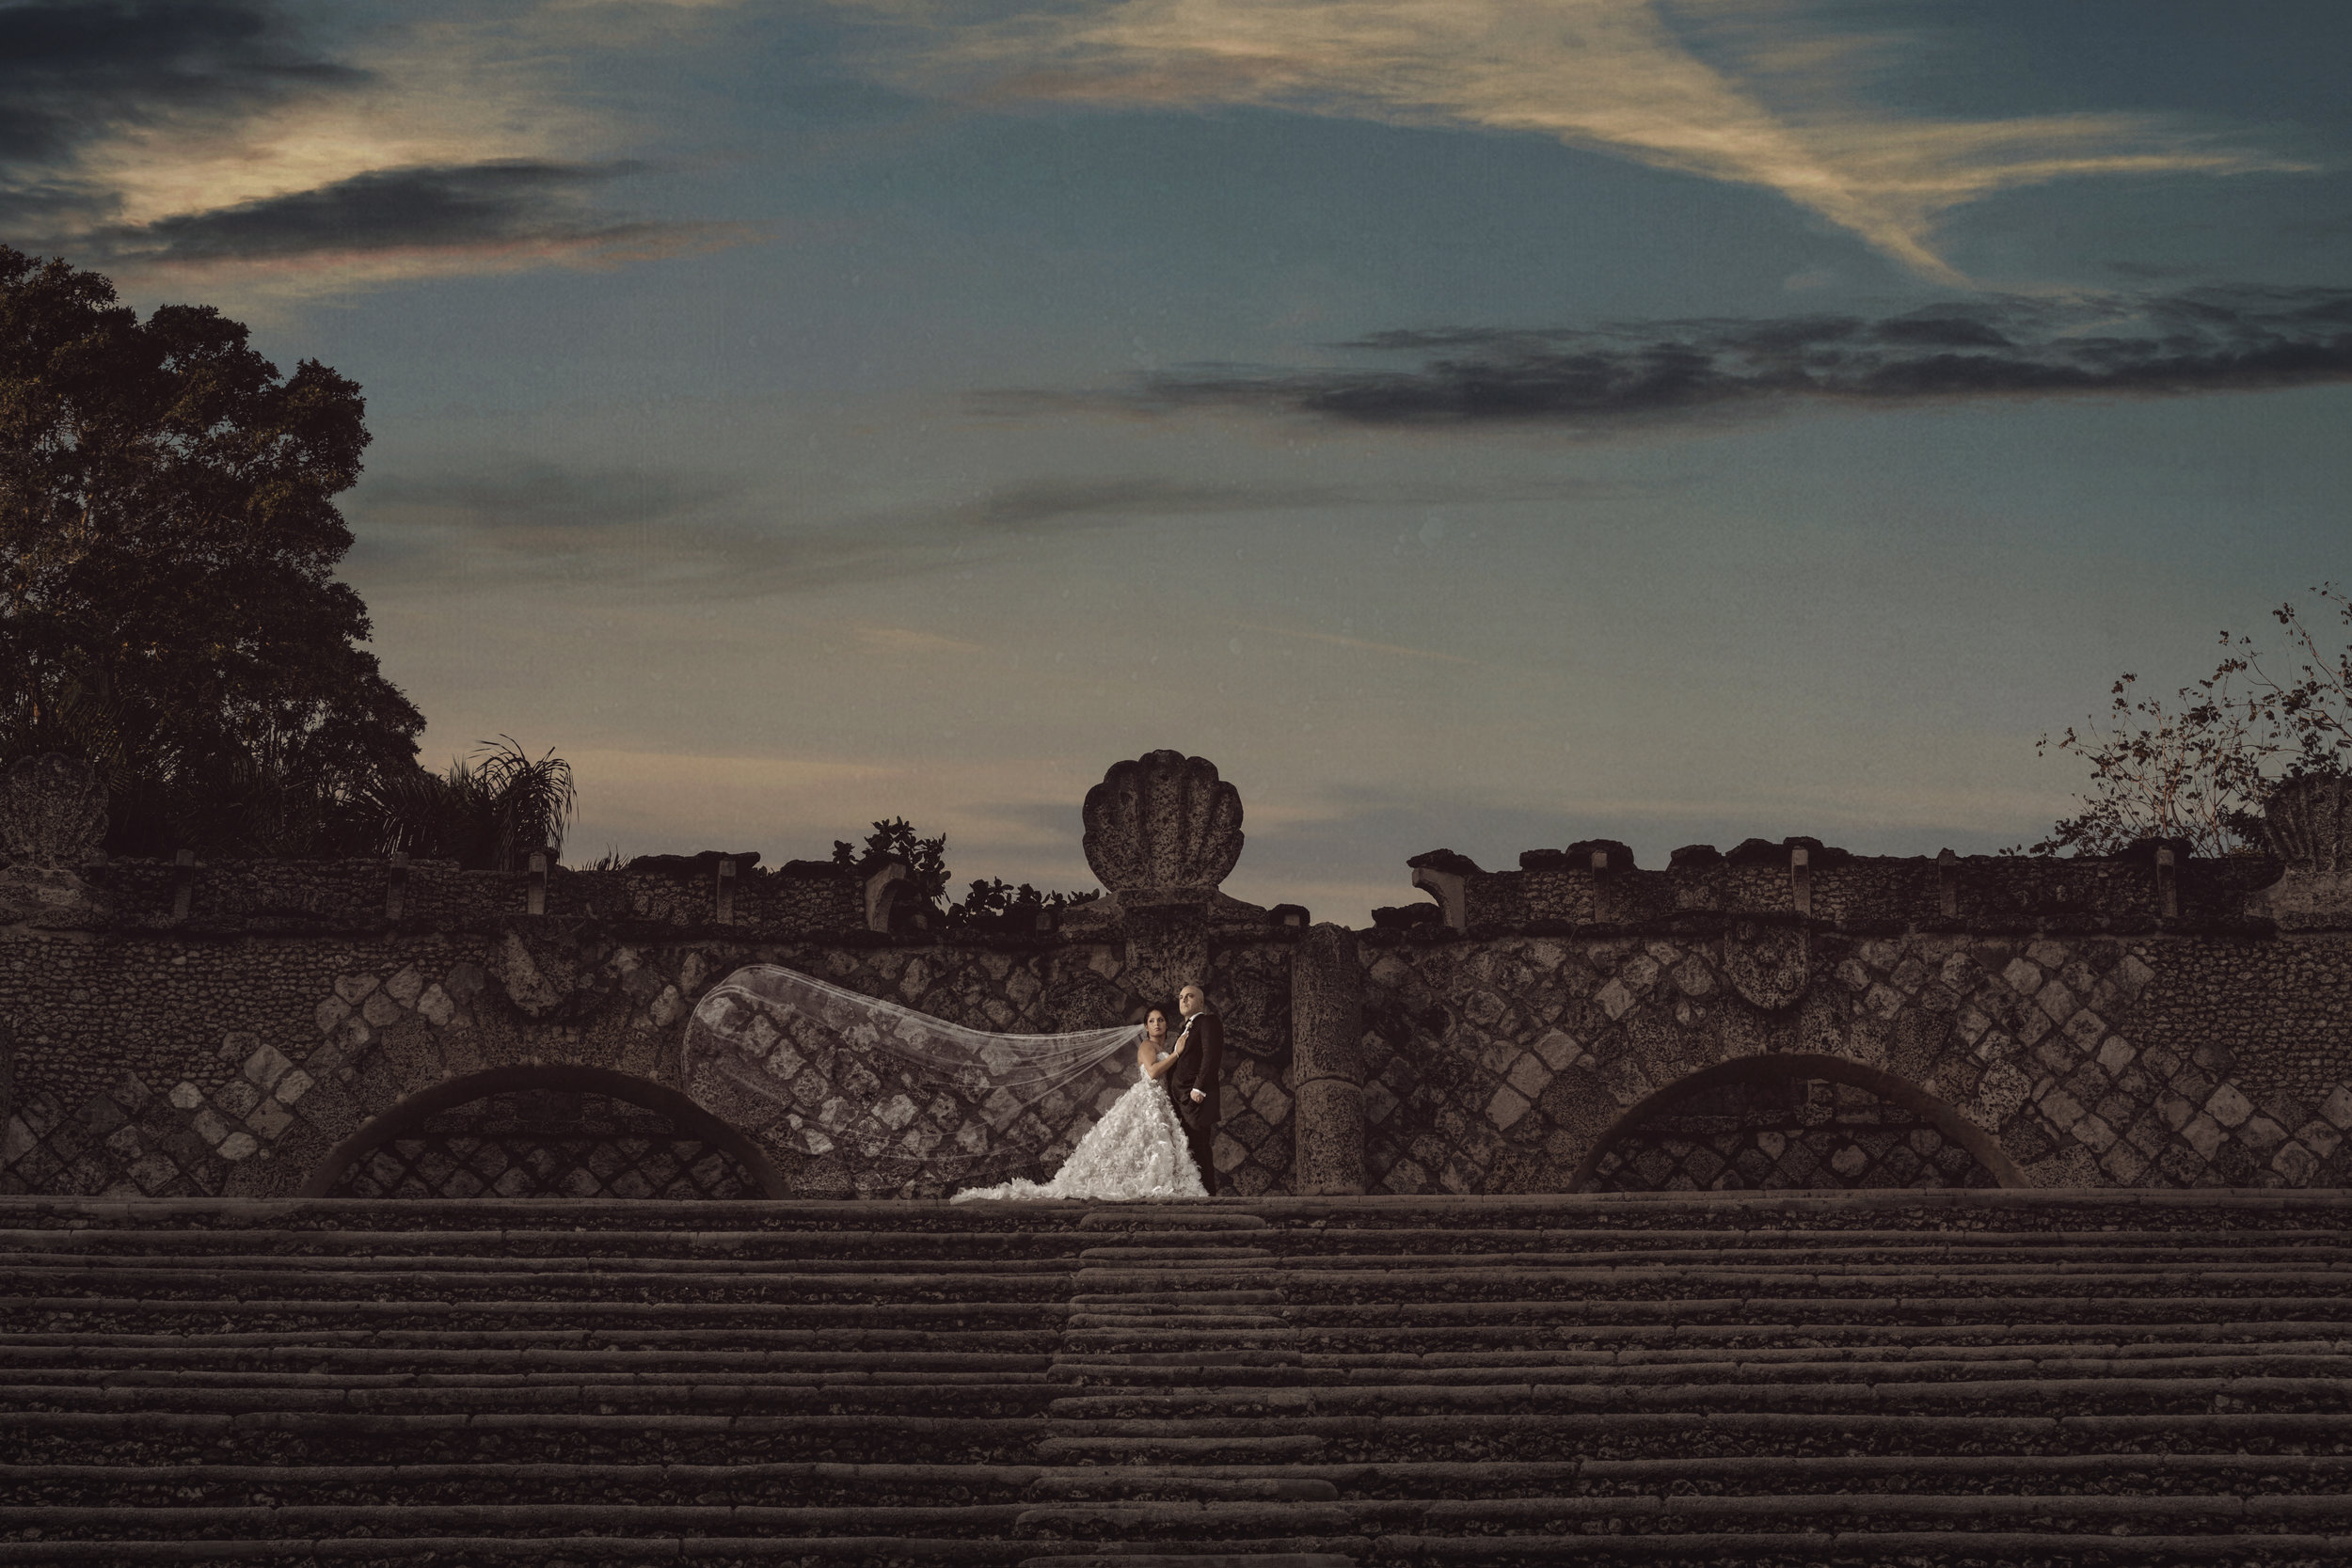 dominican-republic-wedding-photography.jpg